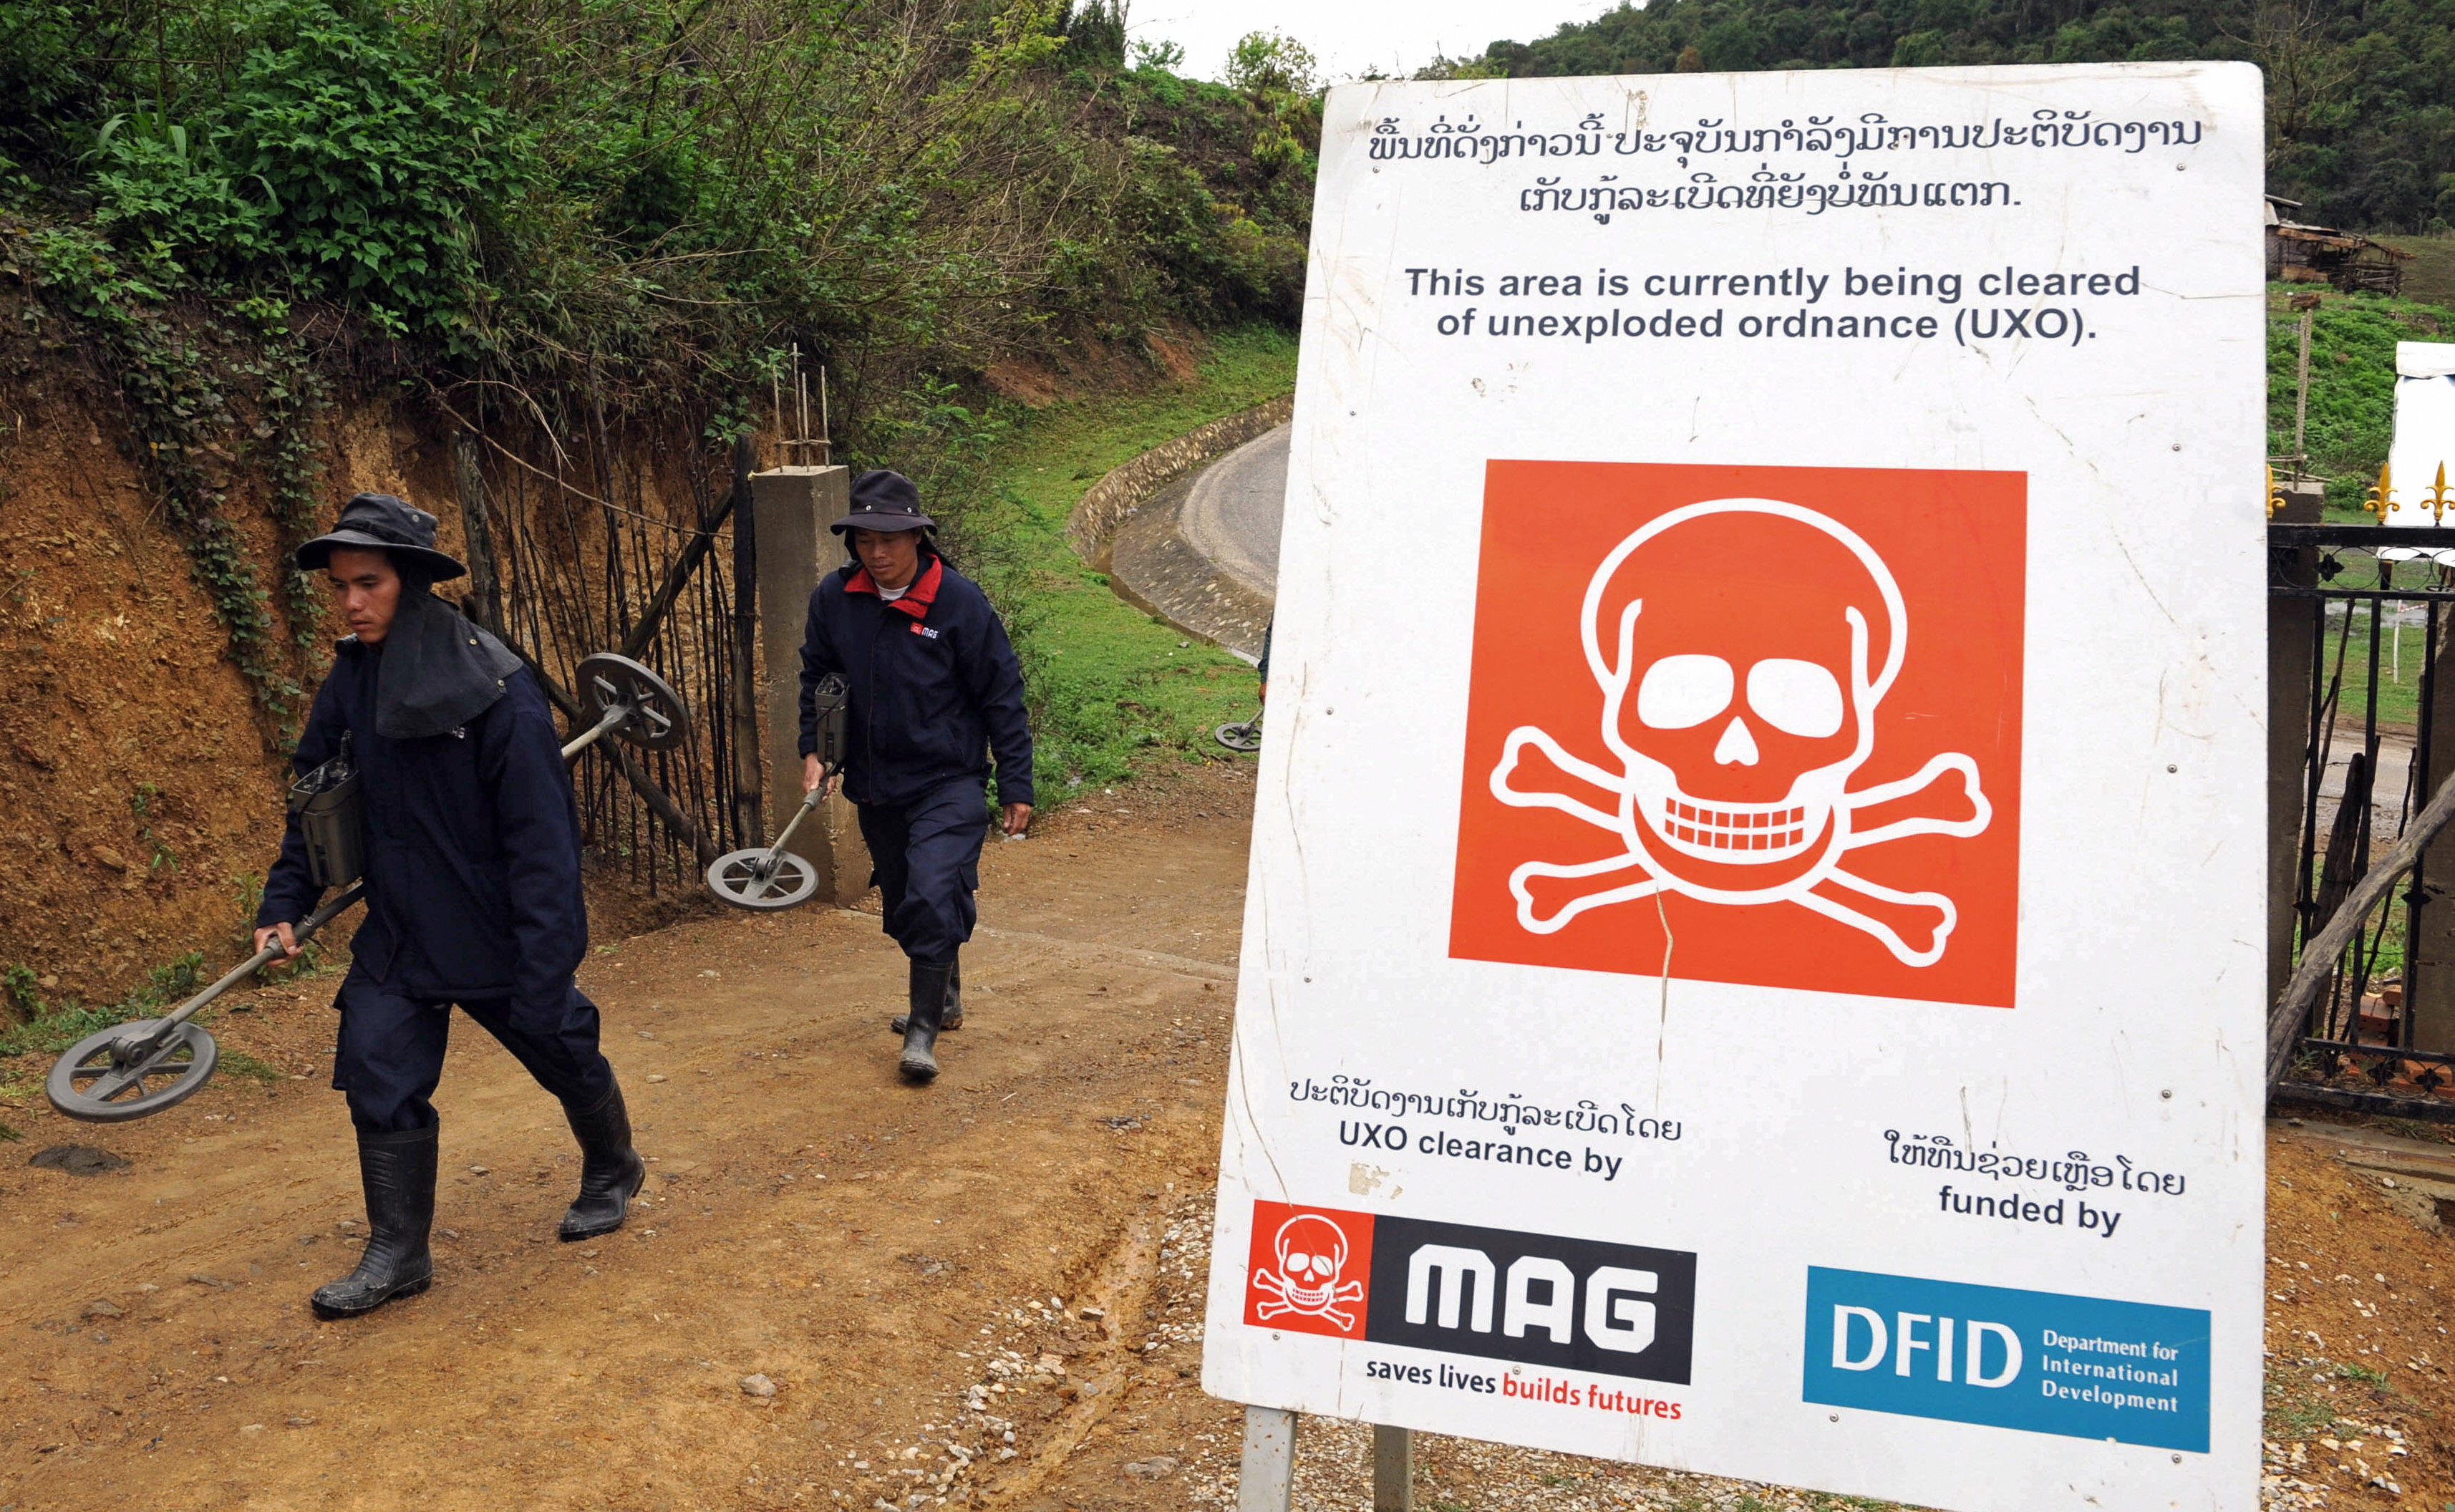 Workers of an UXO (unexploded ordnance) clearance team arrive at the Phuckae secondary school in the northern province of Xiangkhoang, Laos.